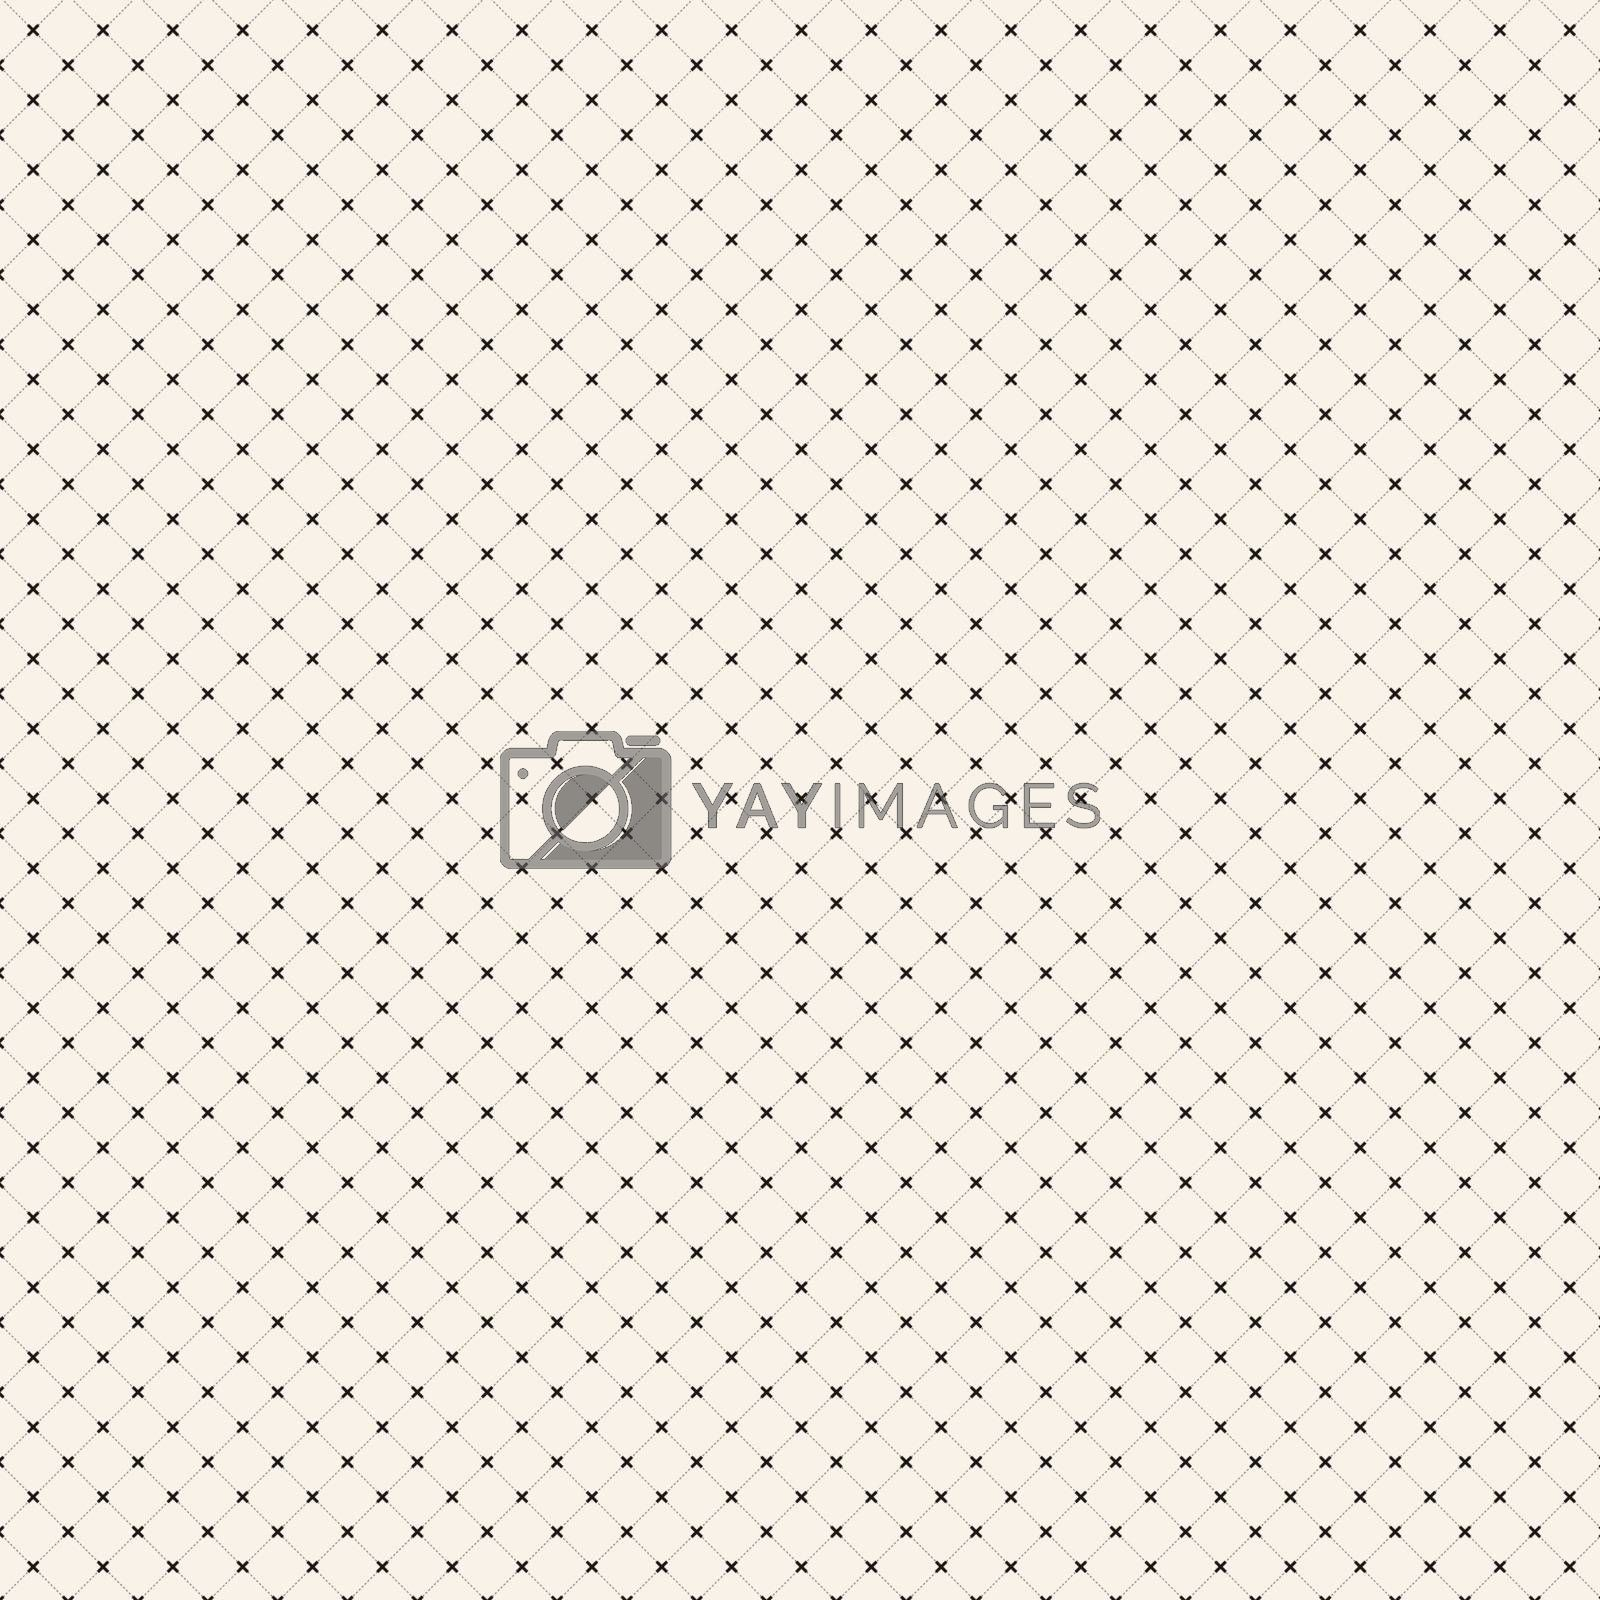 Abstract dashed lines diagonal with cross line pattern background texture, Vector illustration